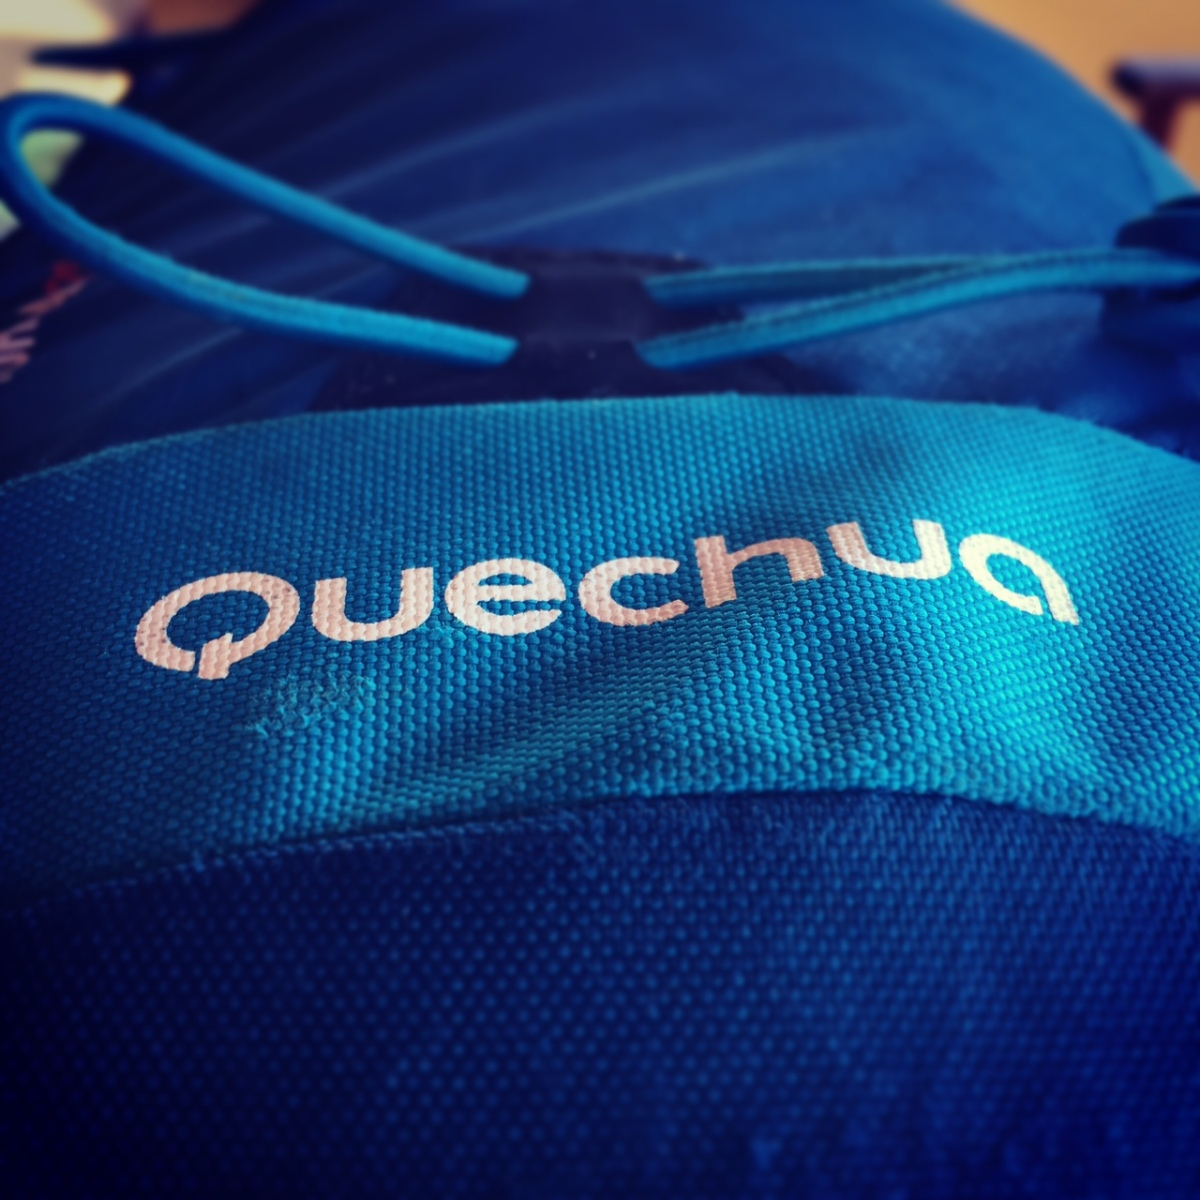 QUECHUA FORCLAZ 20L AIR HIKING BACKPACK REVIEW